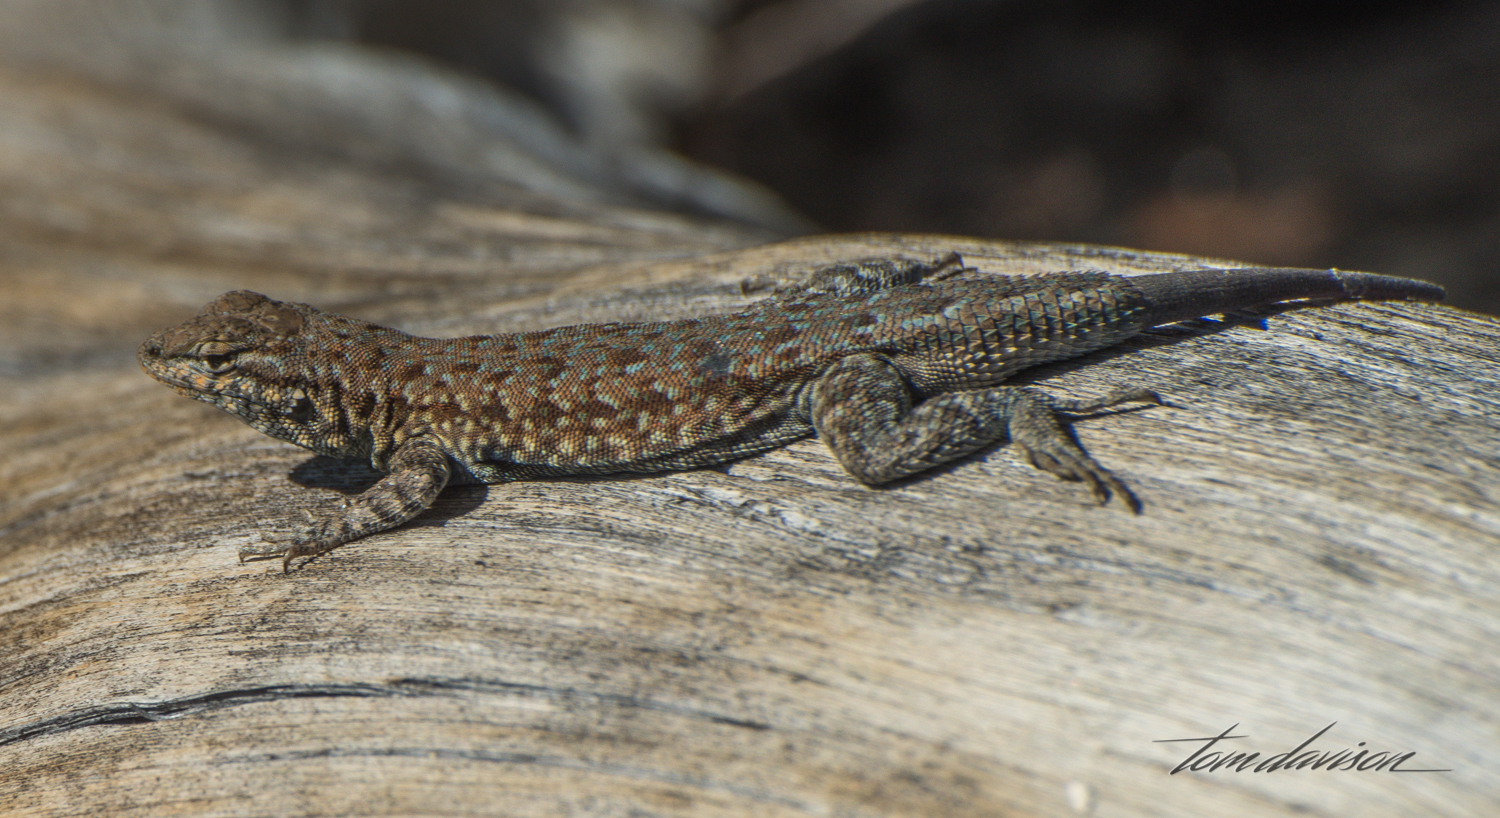 Buttermilk-1.jpg